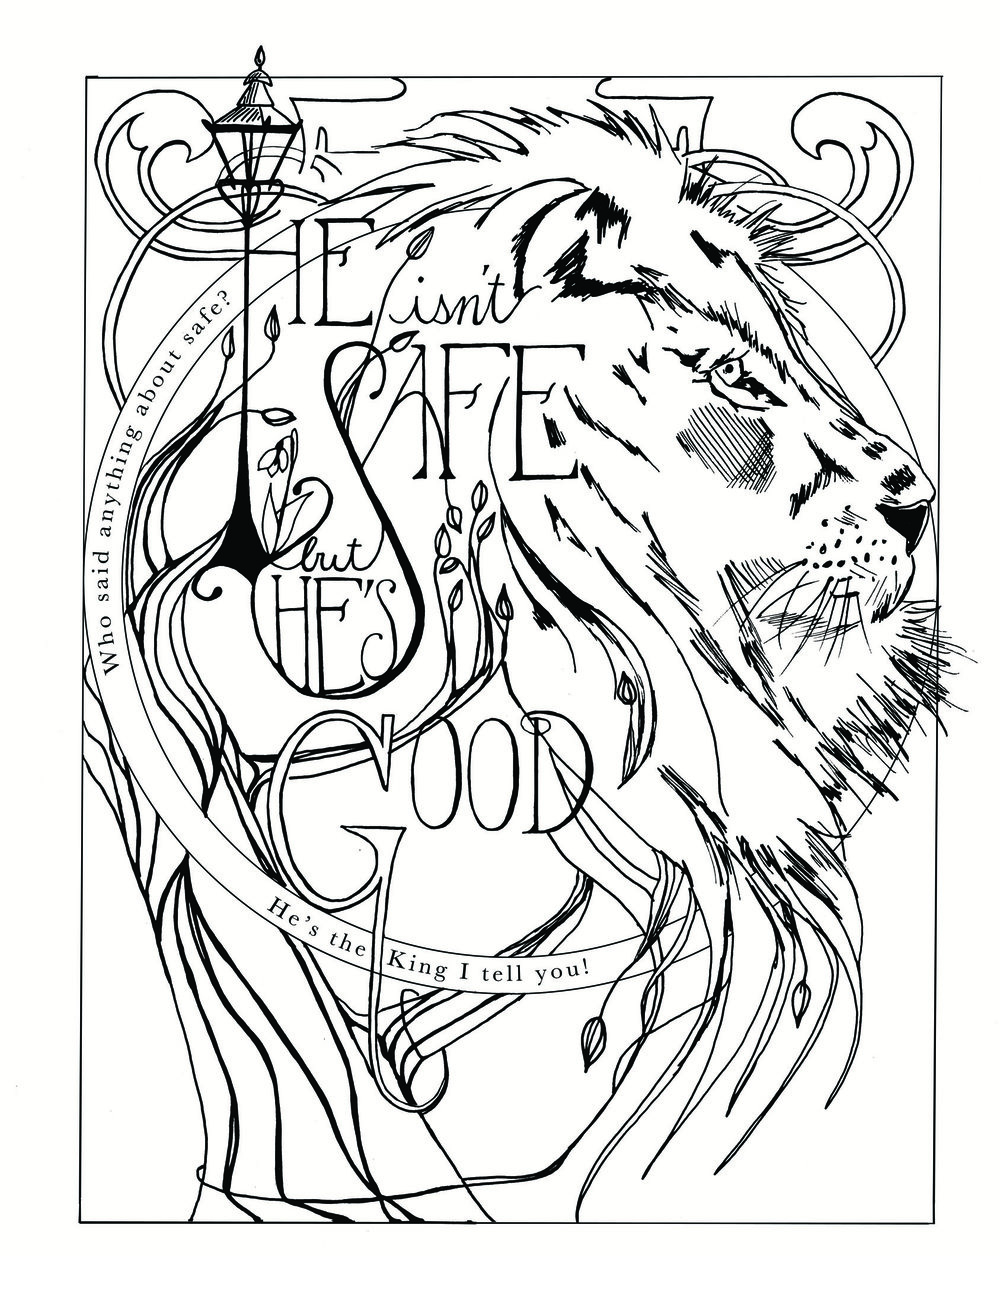 Narnia drawing lion sketchbook for printmaking